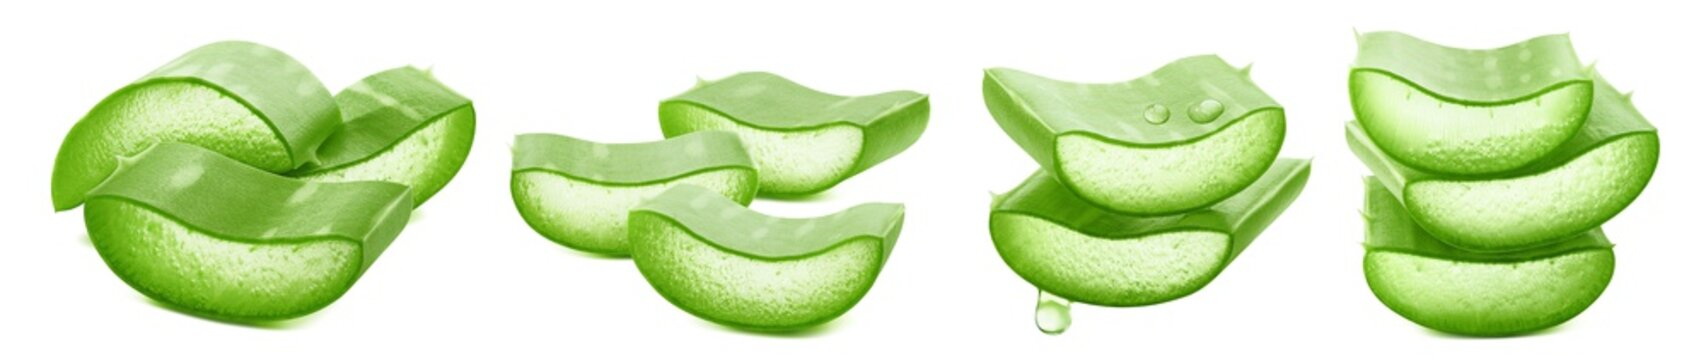 Sliced aloe vera horizontal collection isolated on white background